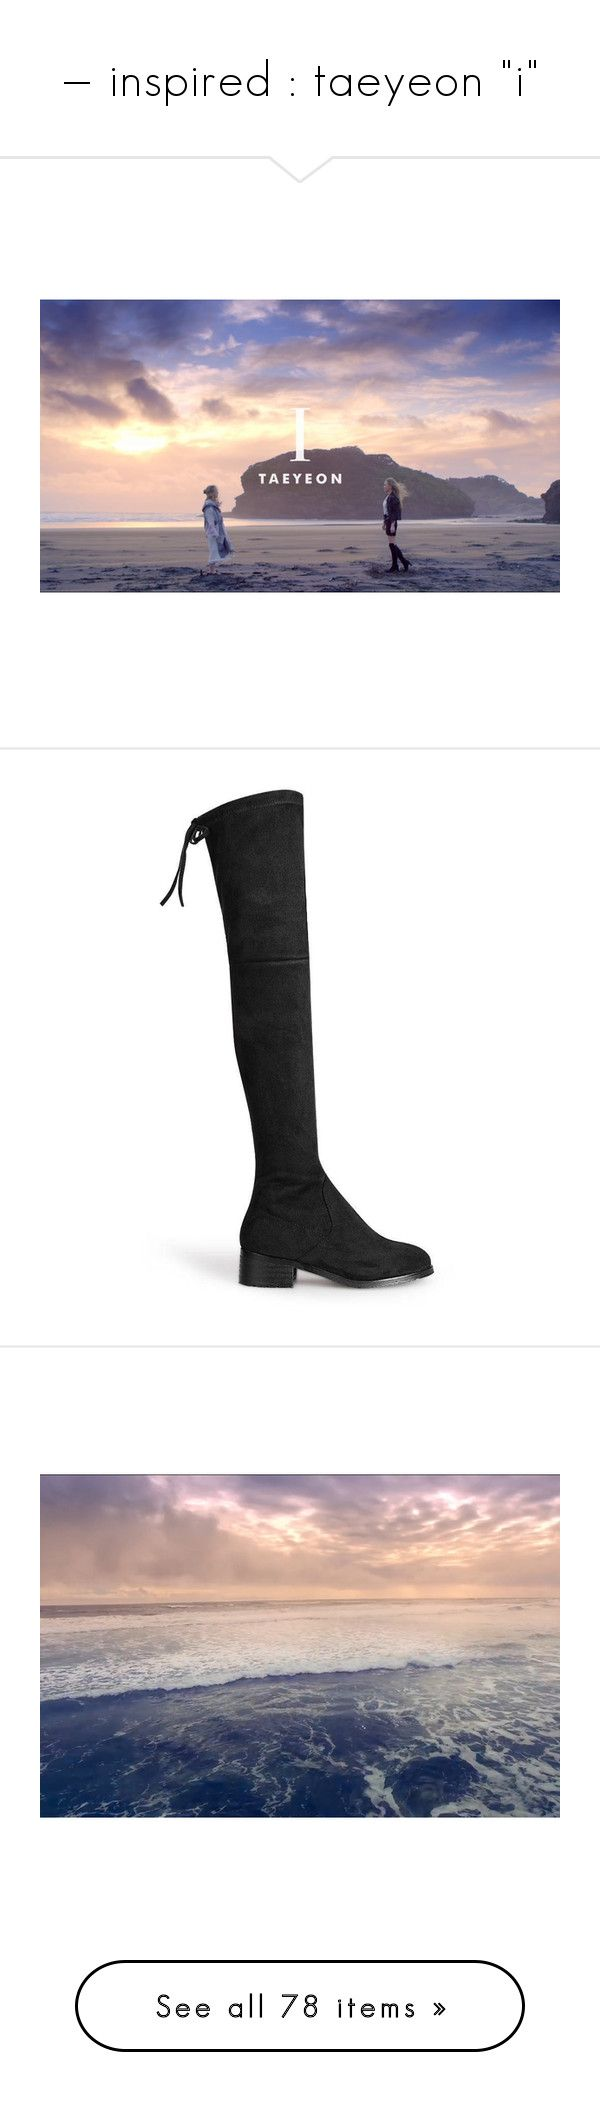 """""""— inspired : taeyeon """"i"""""""" by frealbird ❤ liked on Polyvore featuring kpop, taeyeon, kpopinspired, shoes, boots, black, yoins, black suede knee high boots, black over-the-knee boots and over-the-knee high-heel boots"""